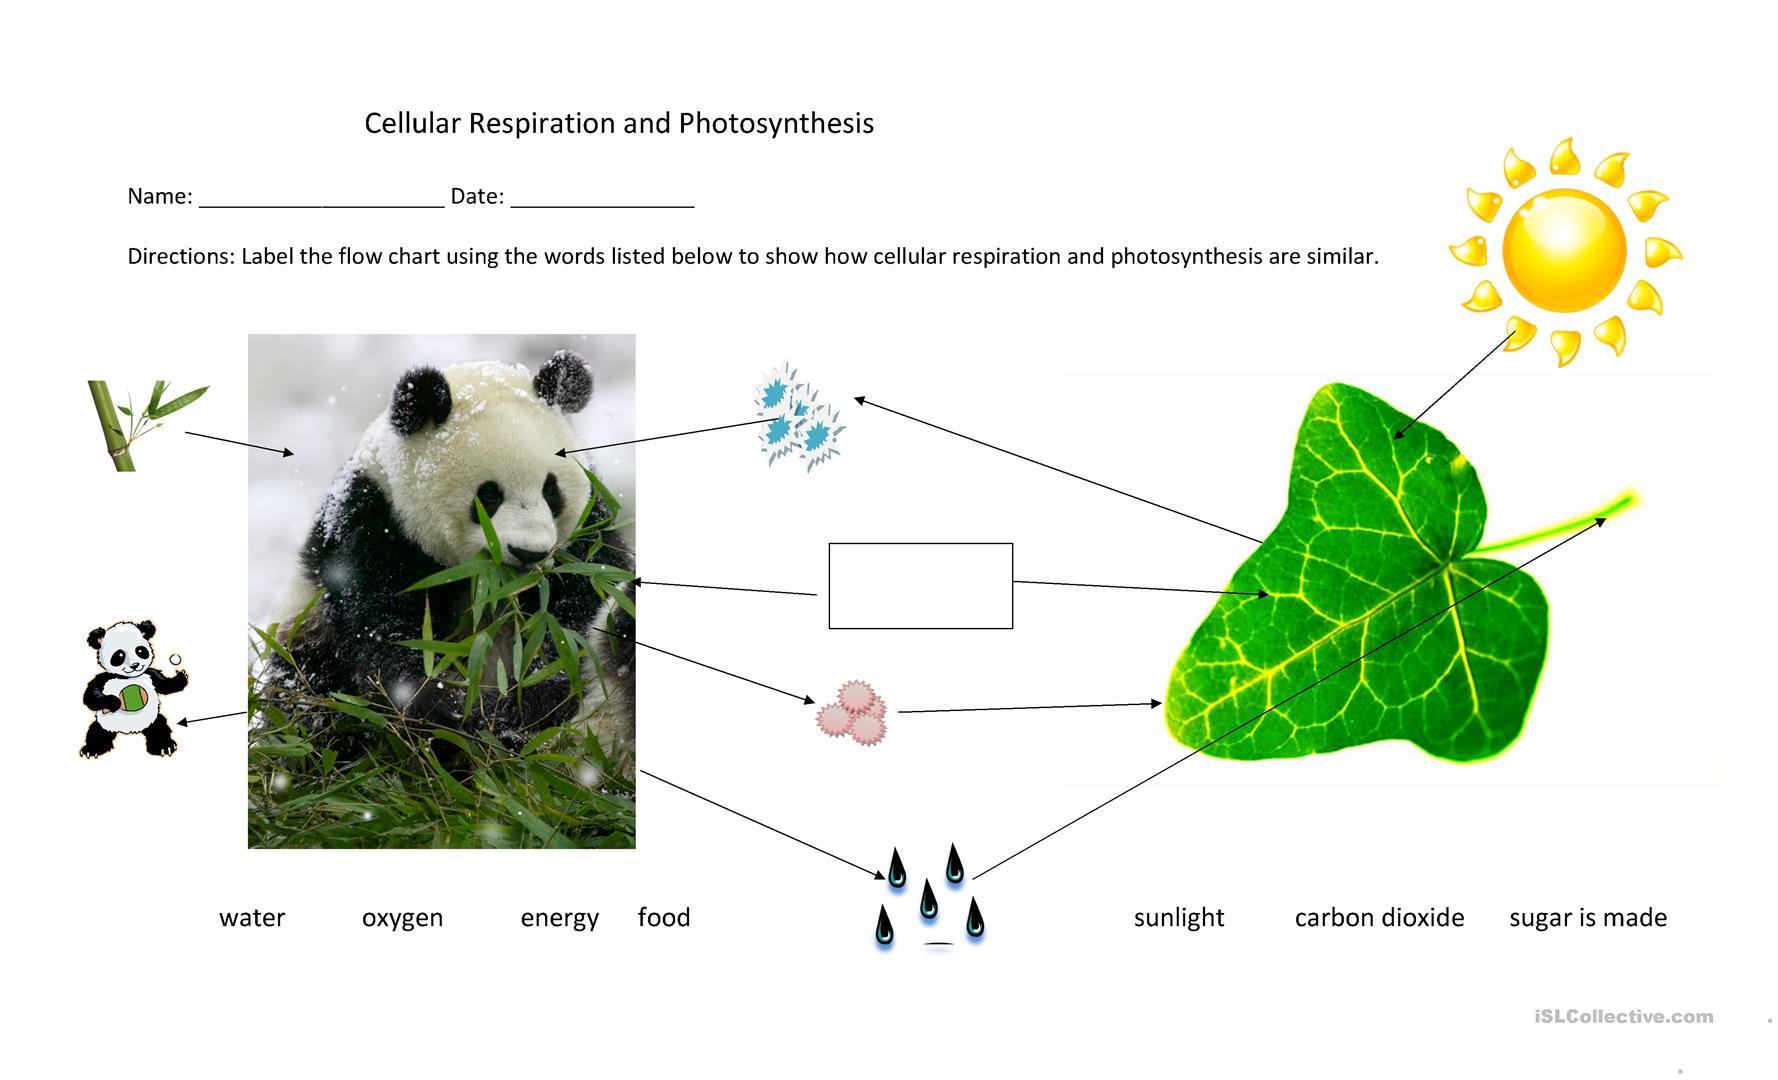 Cellular Respiration And Photosynthesis Flow Chart